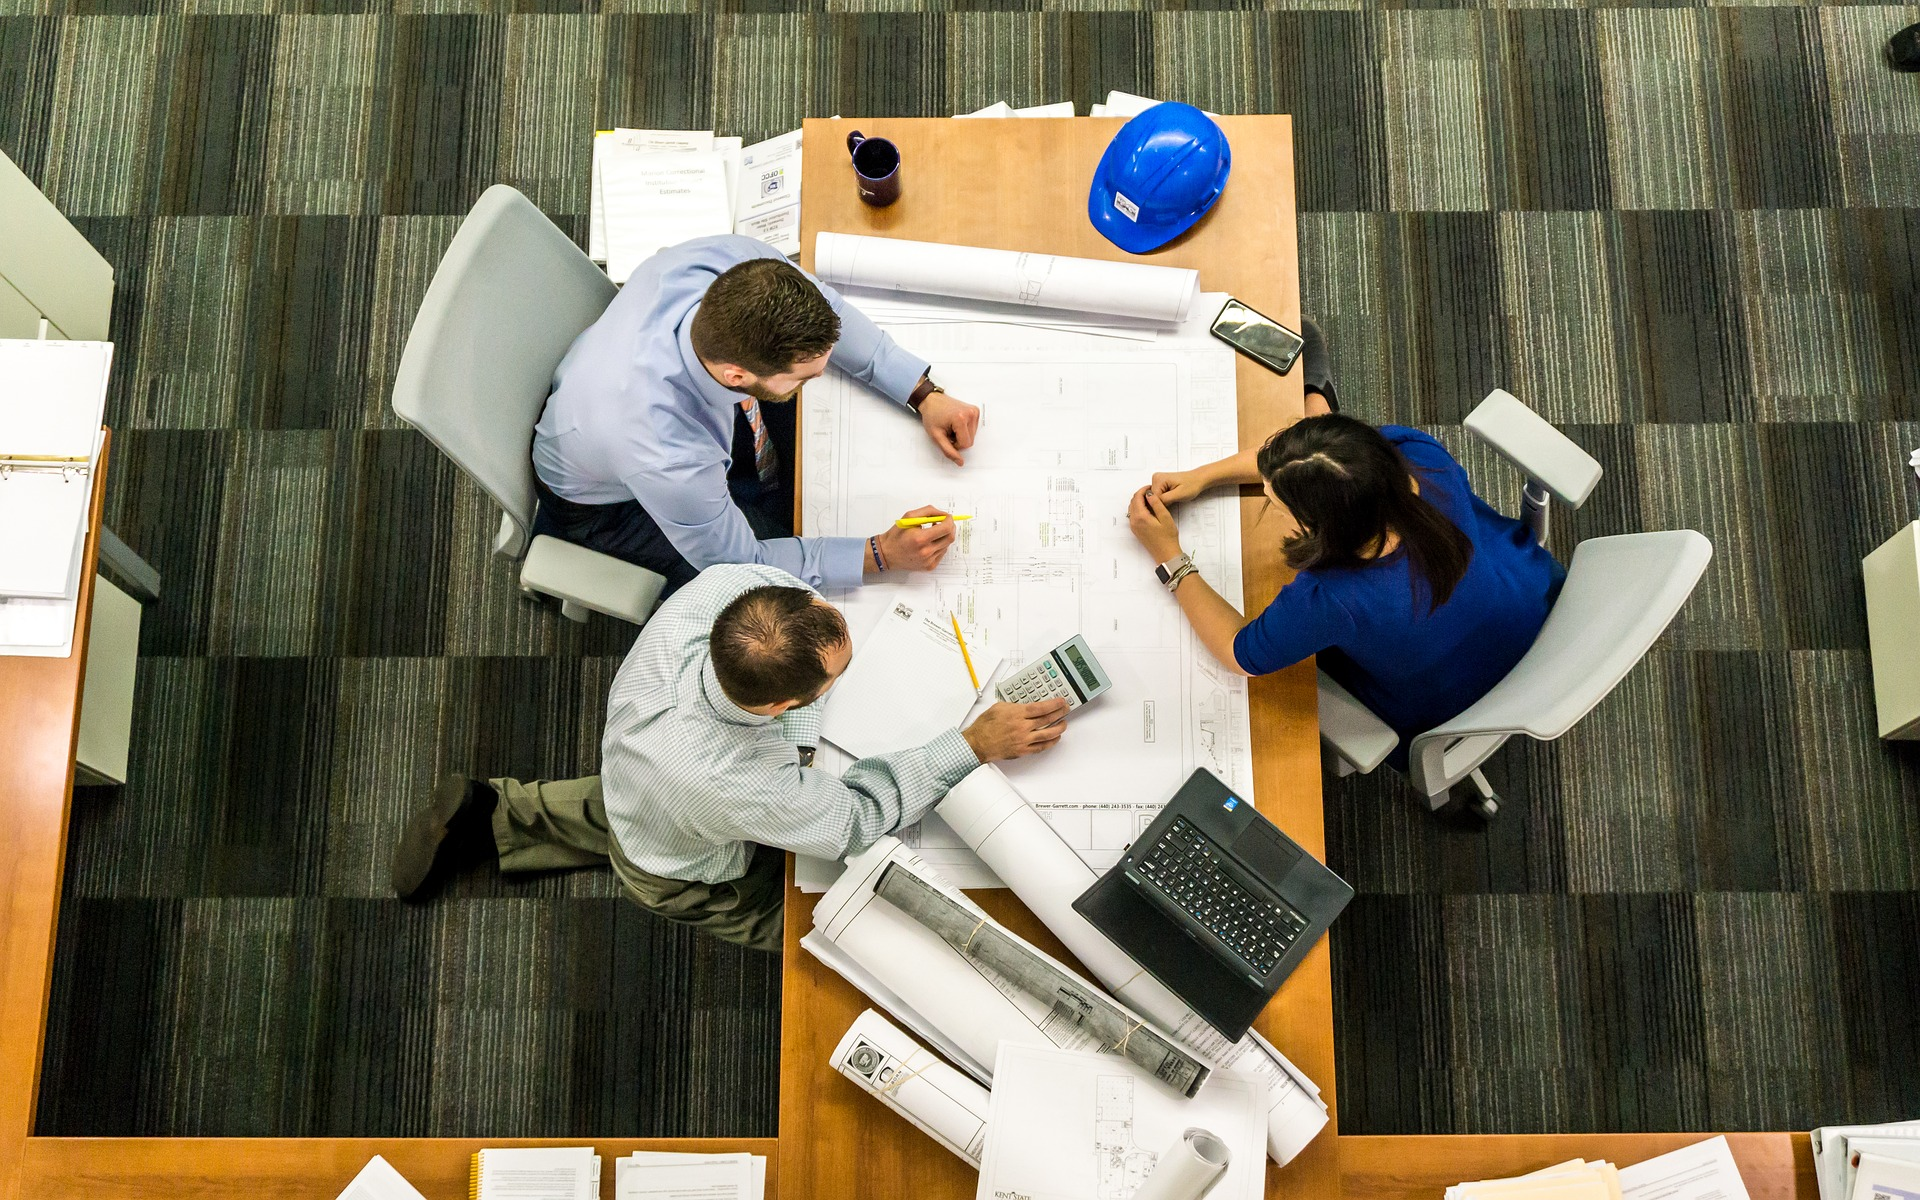 Overhead view of meeting table and three people around with calculators and paper